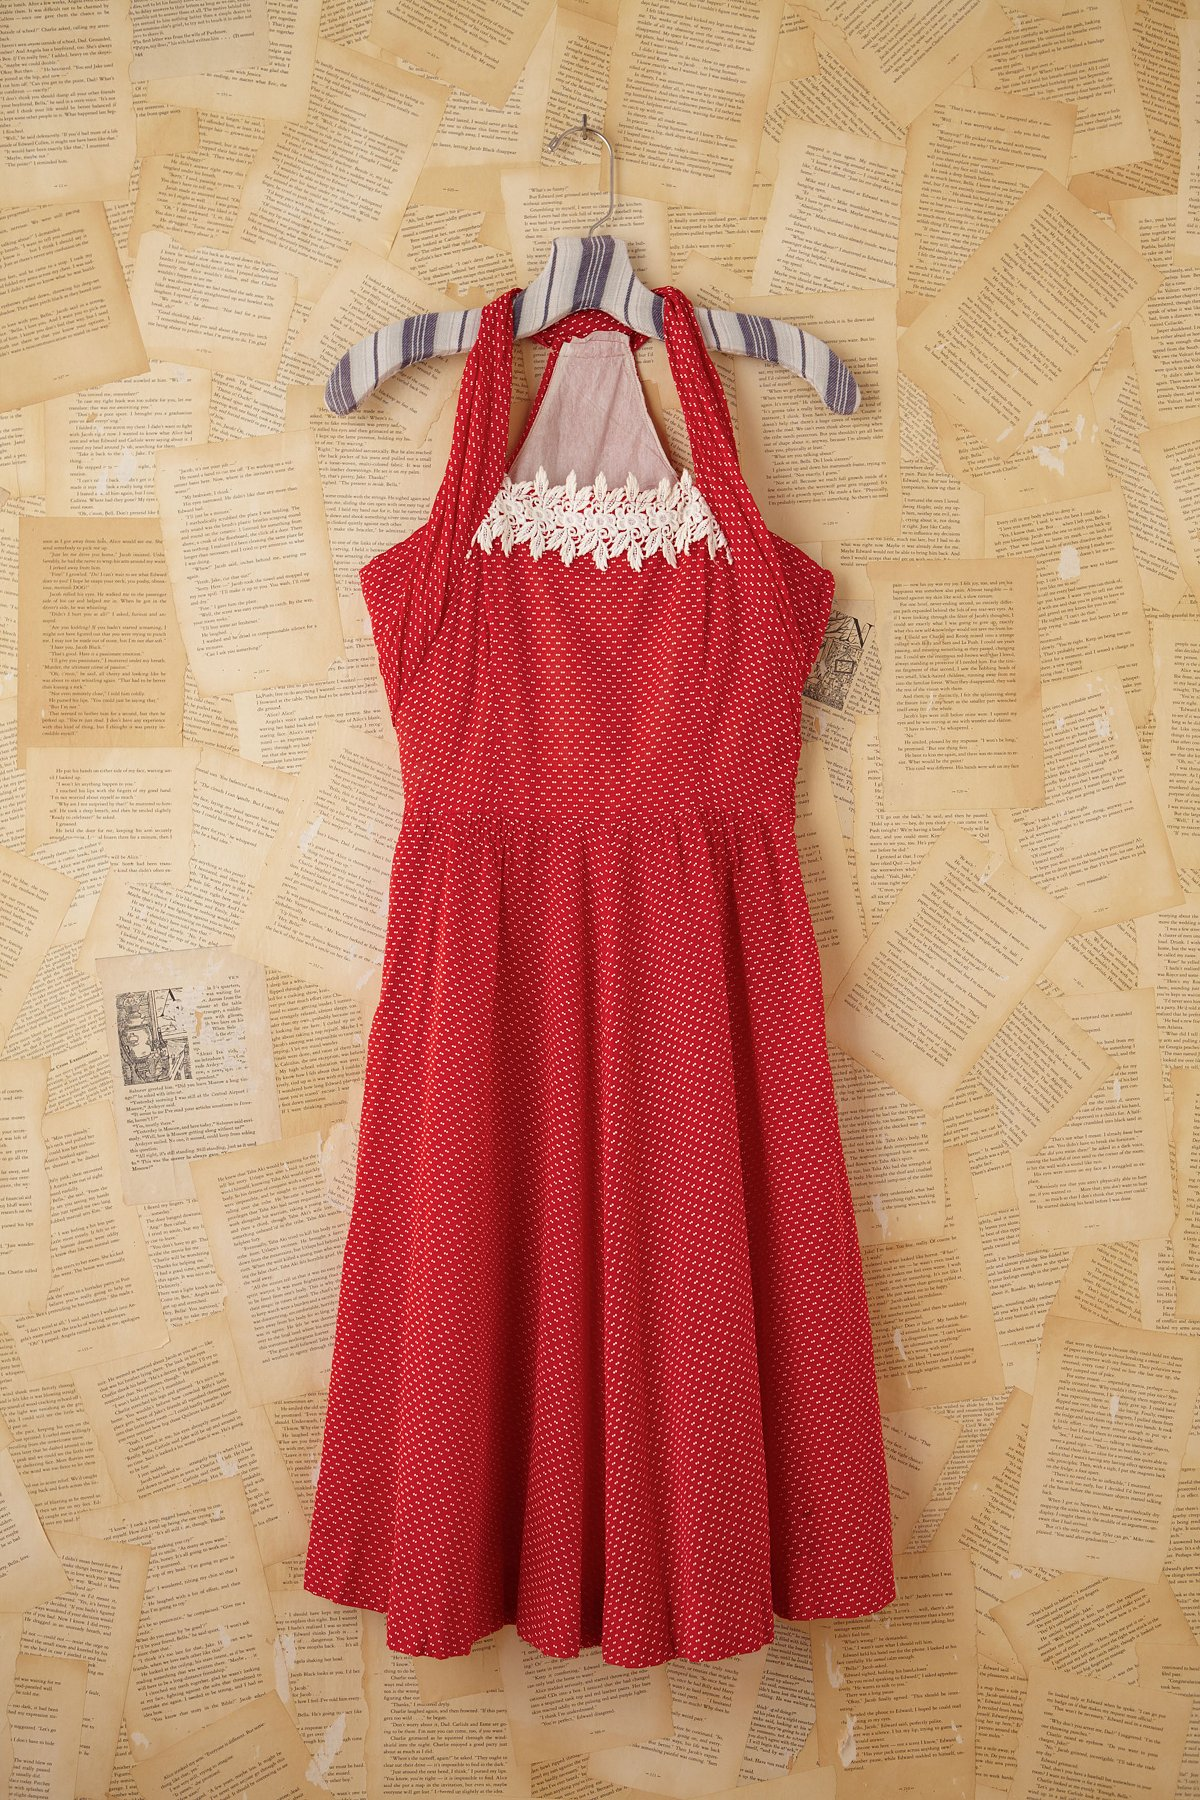 Vintage Red Dotted Swiss Crochet Dress